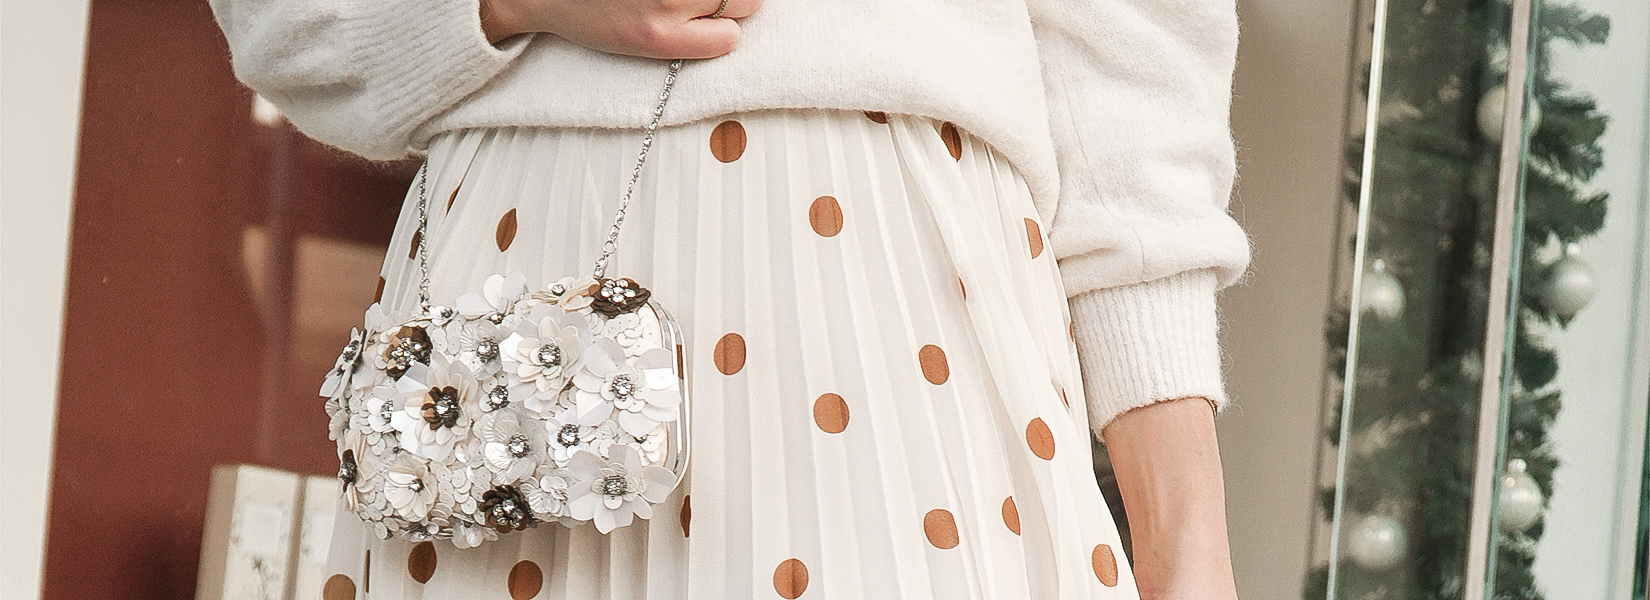 A Festive Holiday Look:  Wearing Pleated Skirts This Christmas